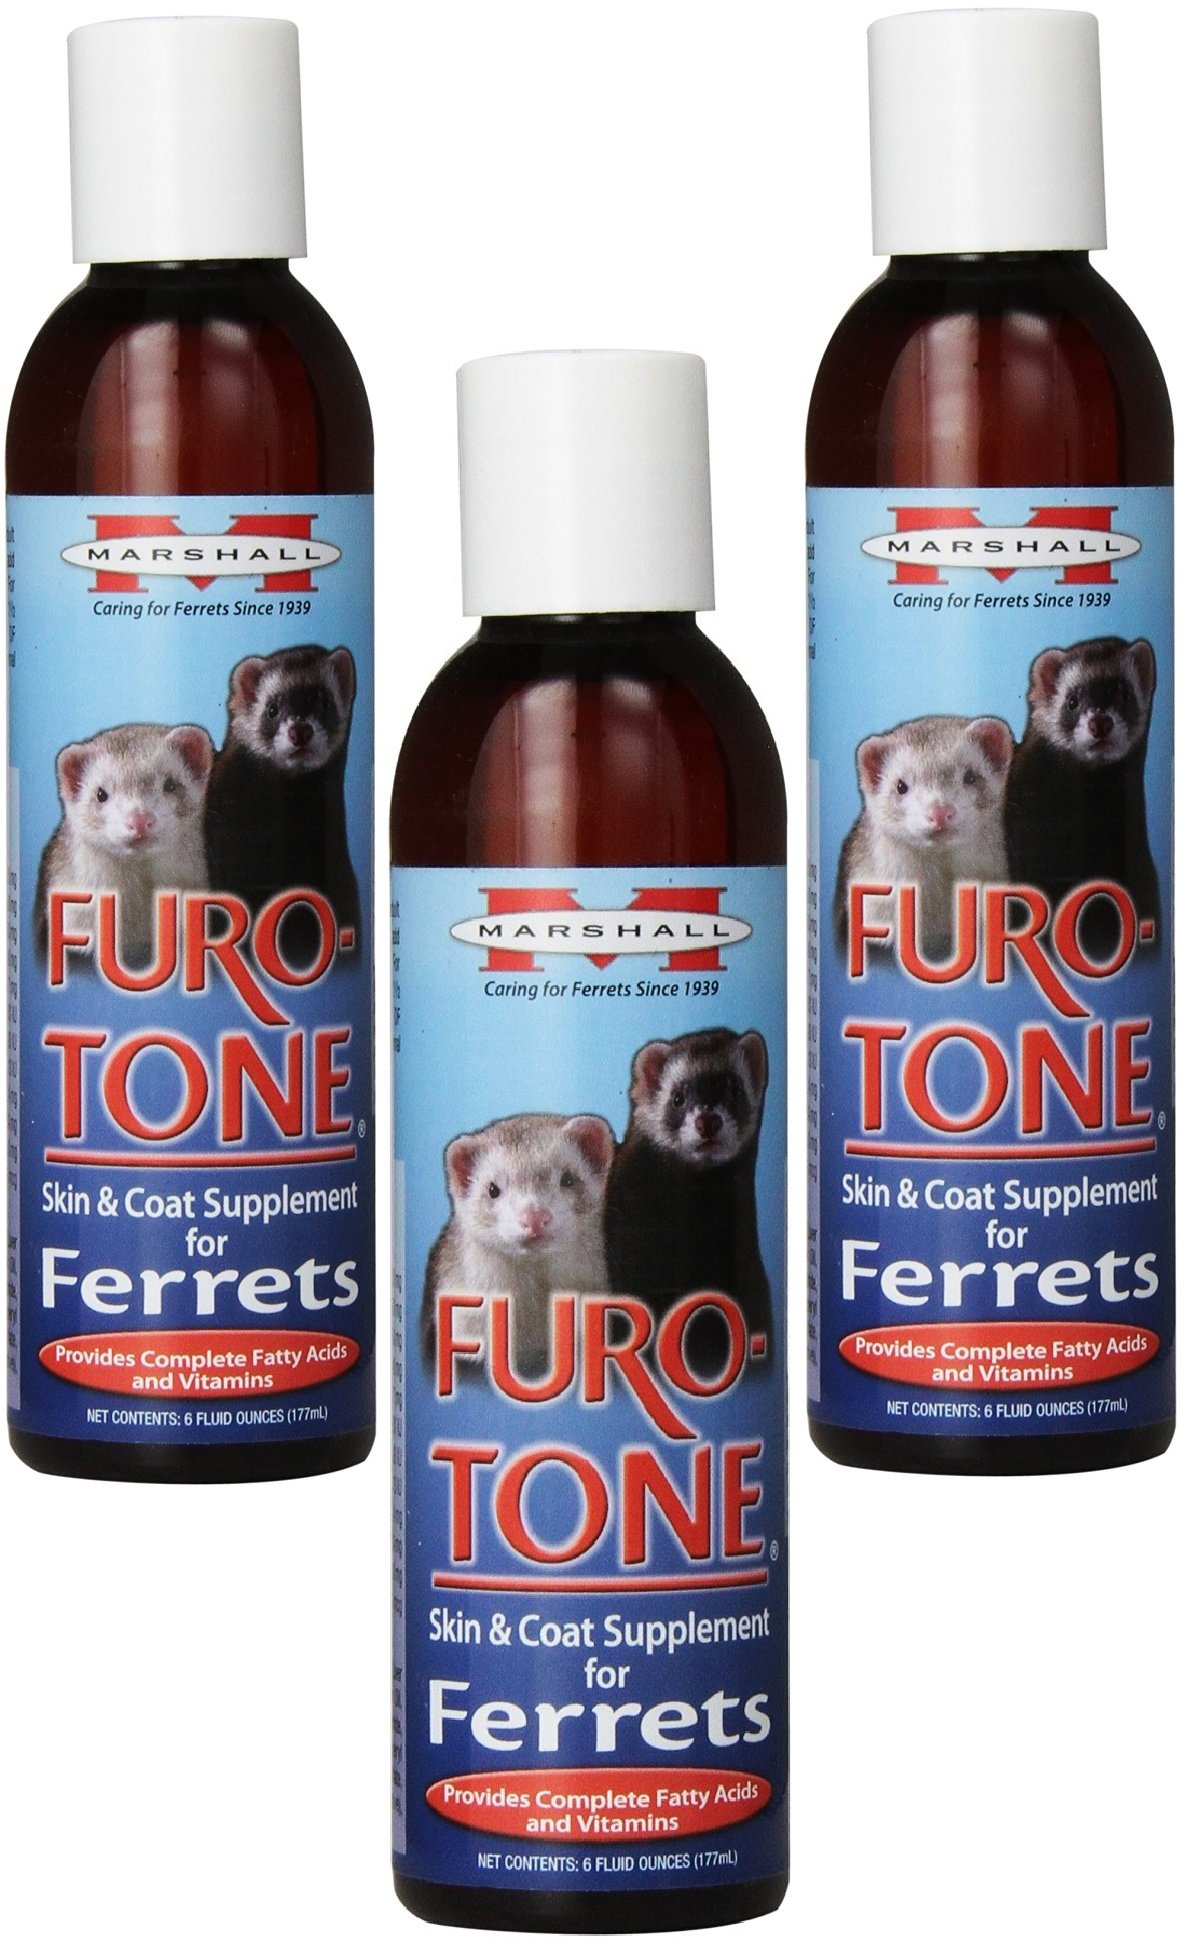 (3 Pack) Marshall Furo Tone Vitamin Supplement for Ferrets, 6-Ounce each by Marshall